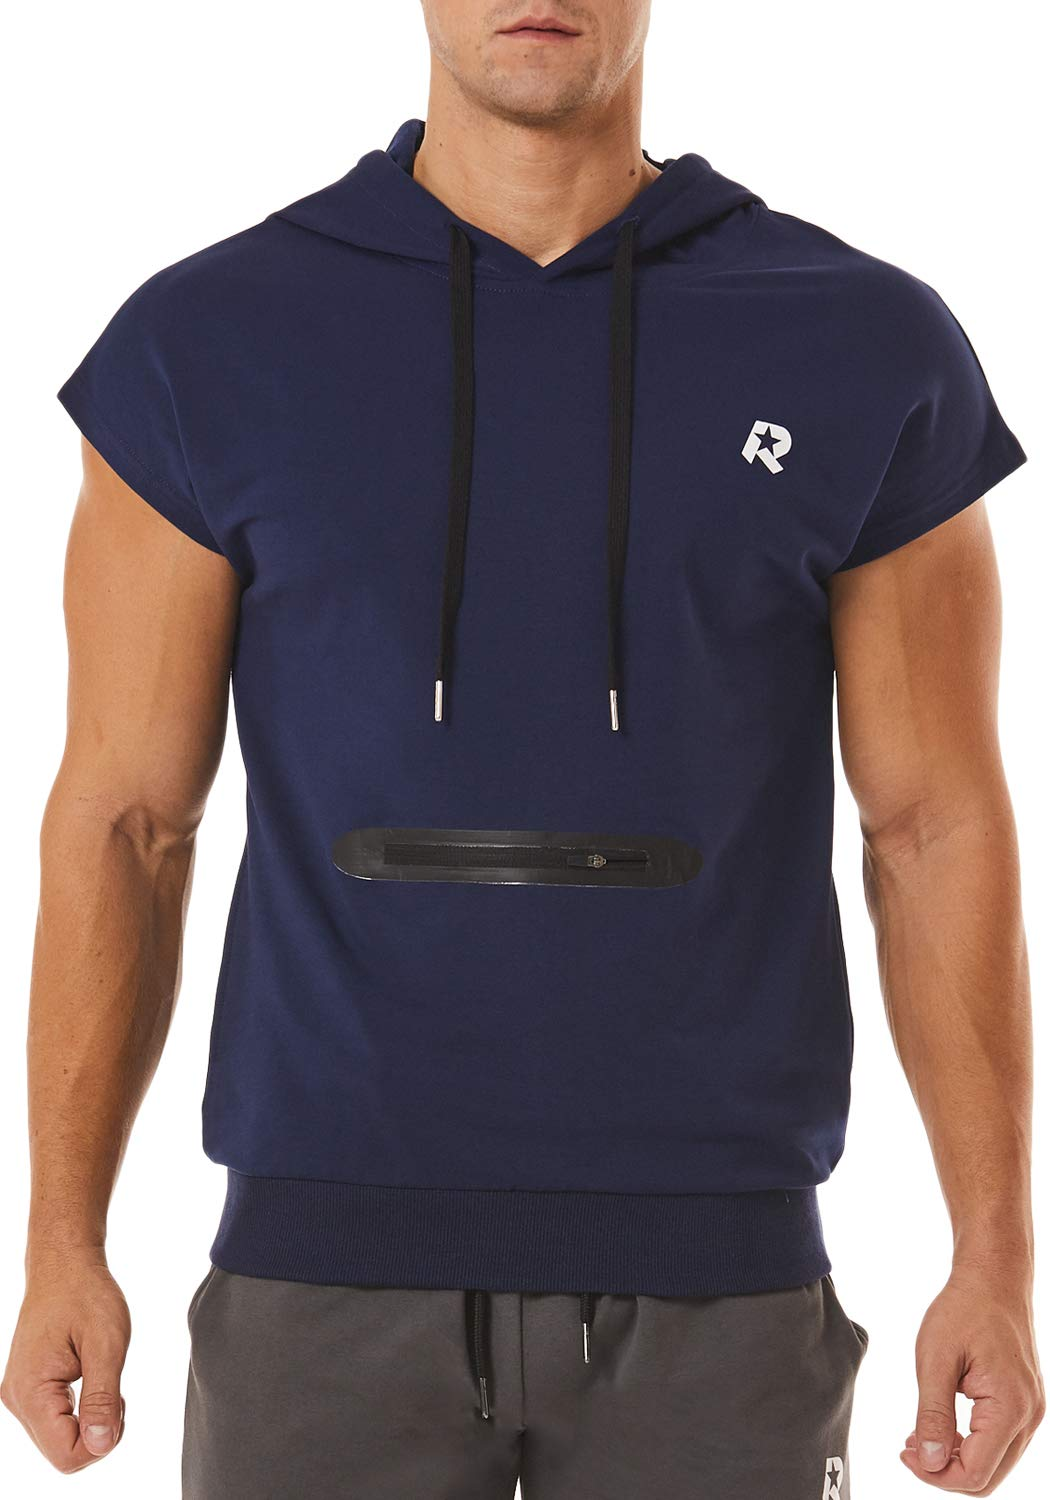 ROWILUX Men's Workout Athletic Muscle Short Sleeve Training Top with Pocket Gym Hoodies